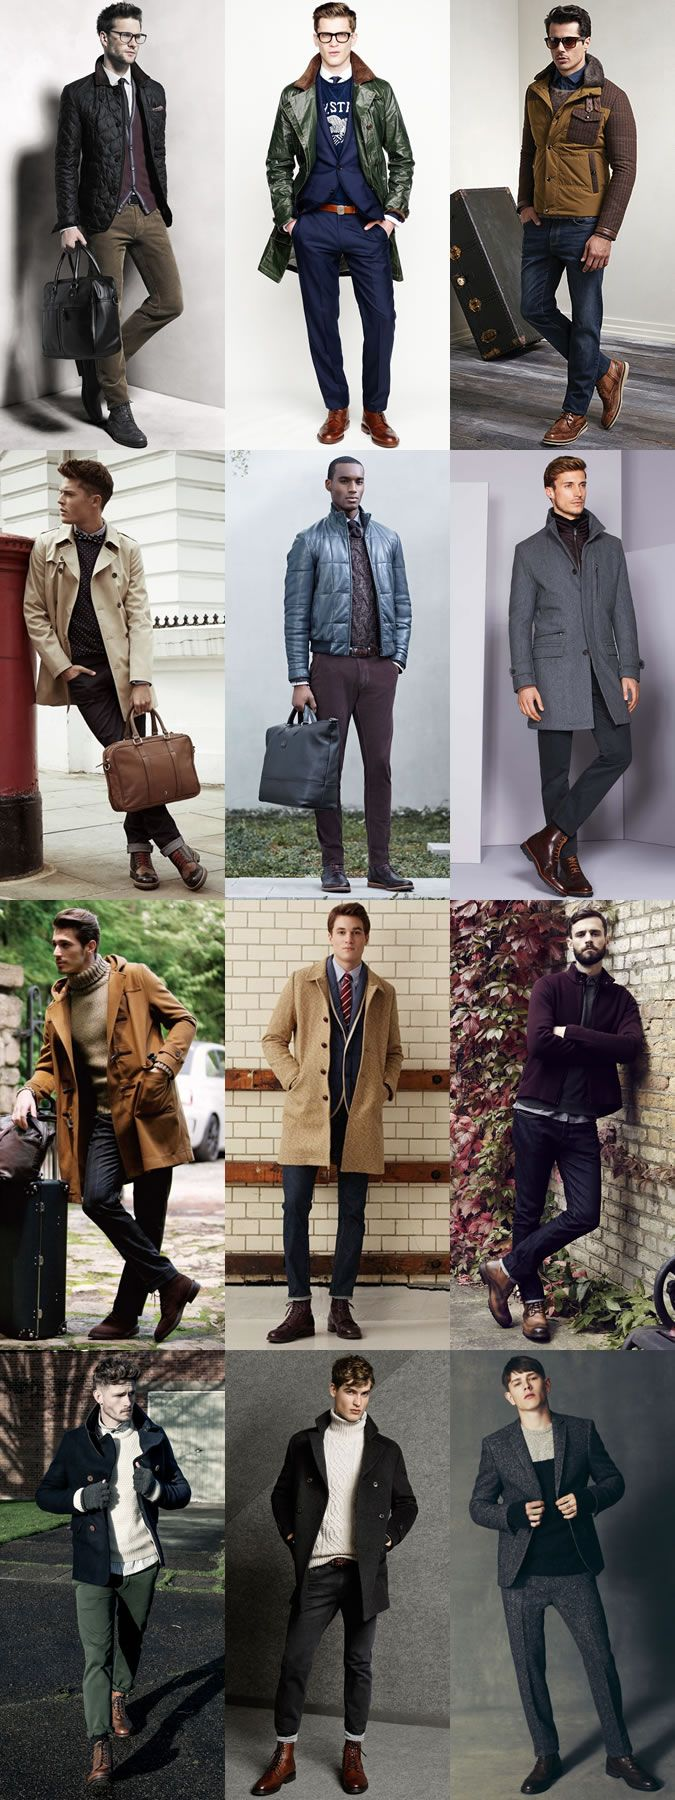 A great pair of formal boots can be dressed up or down with ease, looking just as good with your suits as they do with slim denim jeans and a leather jacket. We break down the four key men's smart boot styles on the current market - from Oxfords to Brogues - picking out our favourite brands and models while showing you how to wear them in a variety of modern ways.